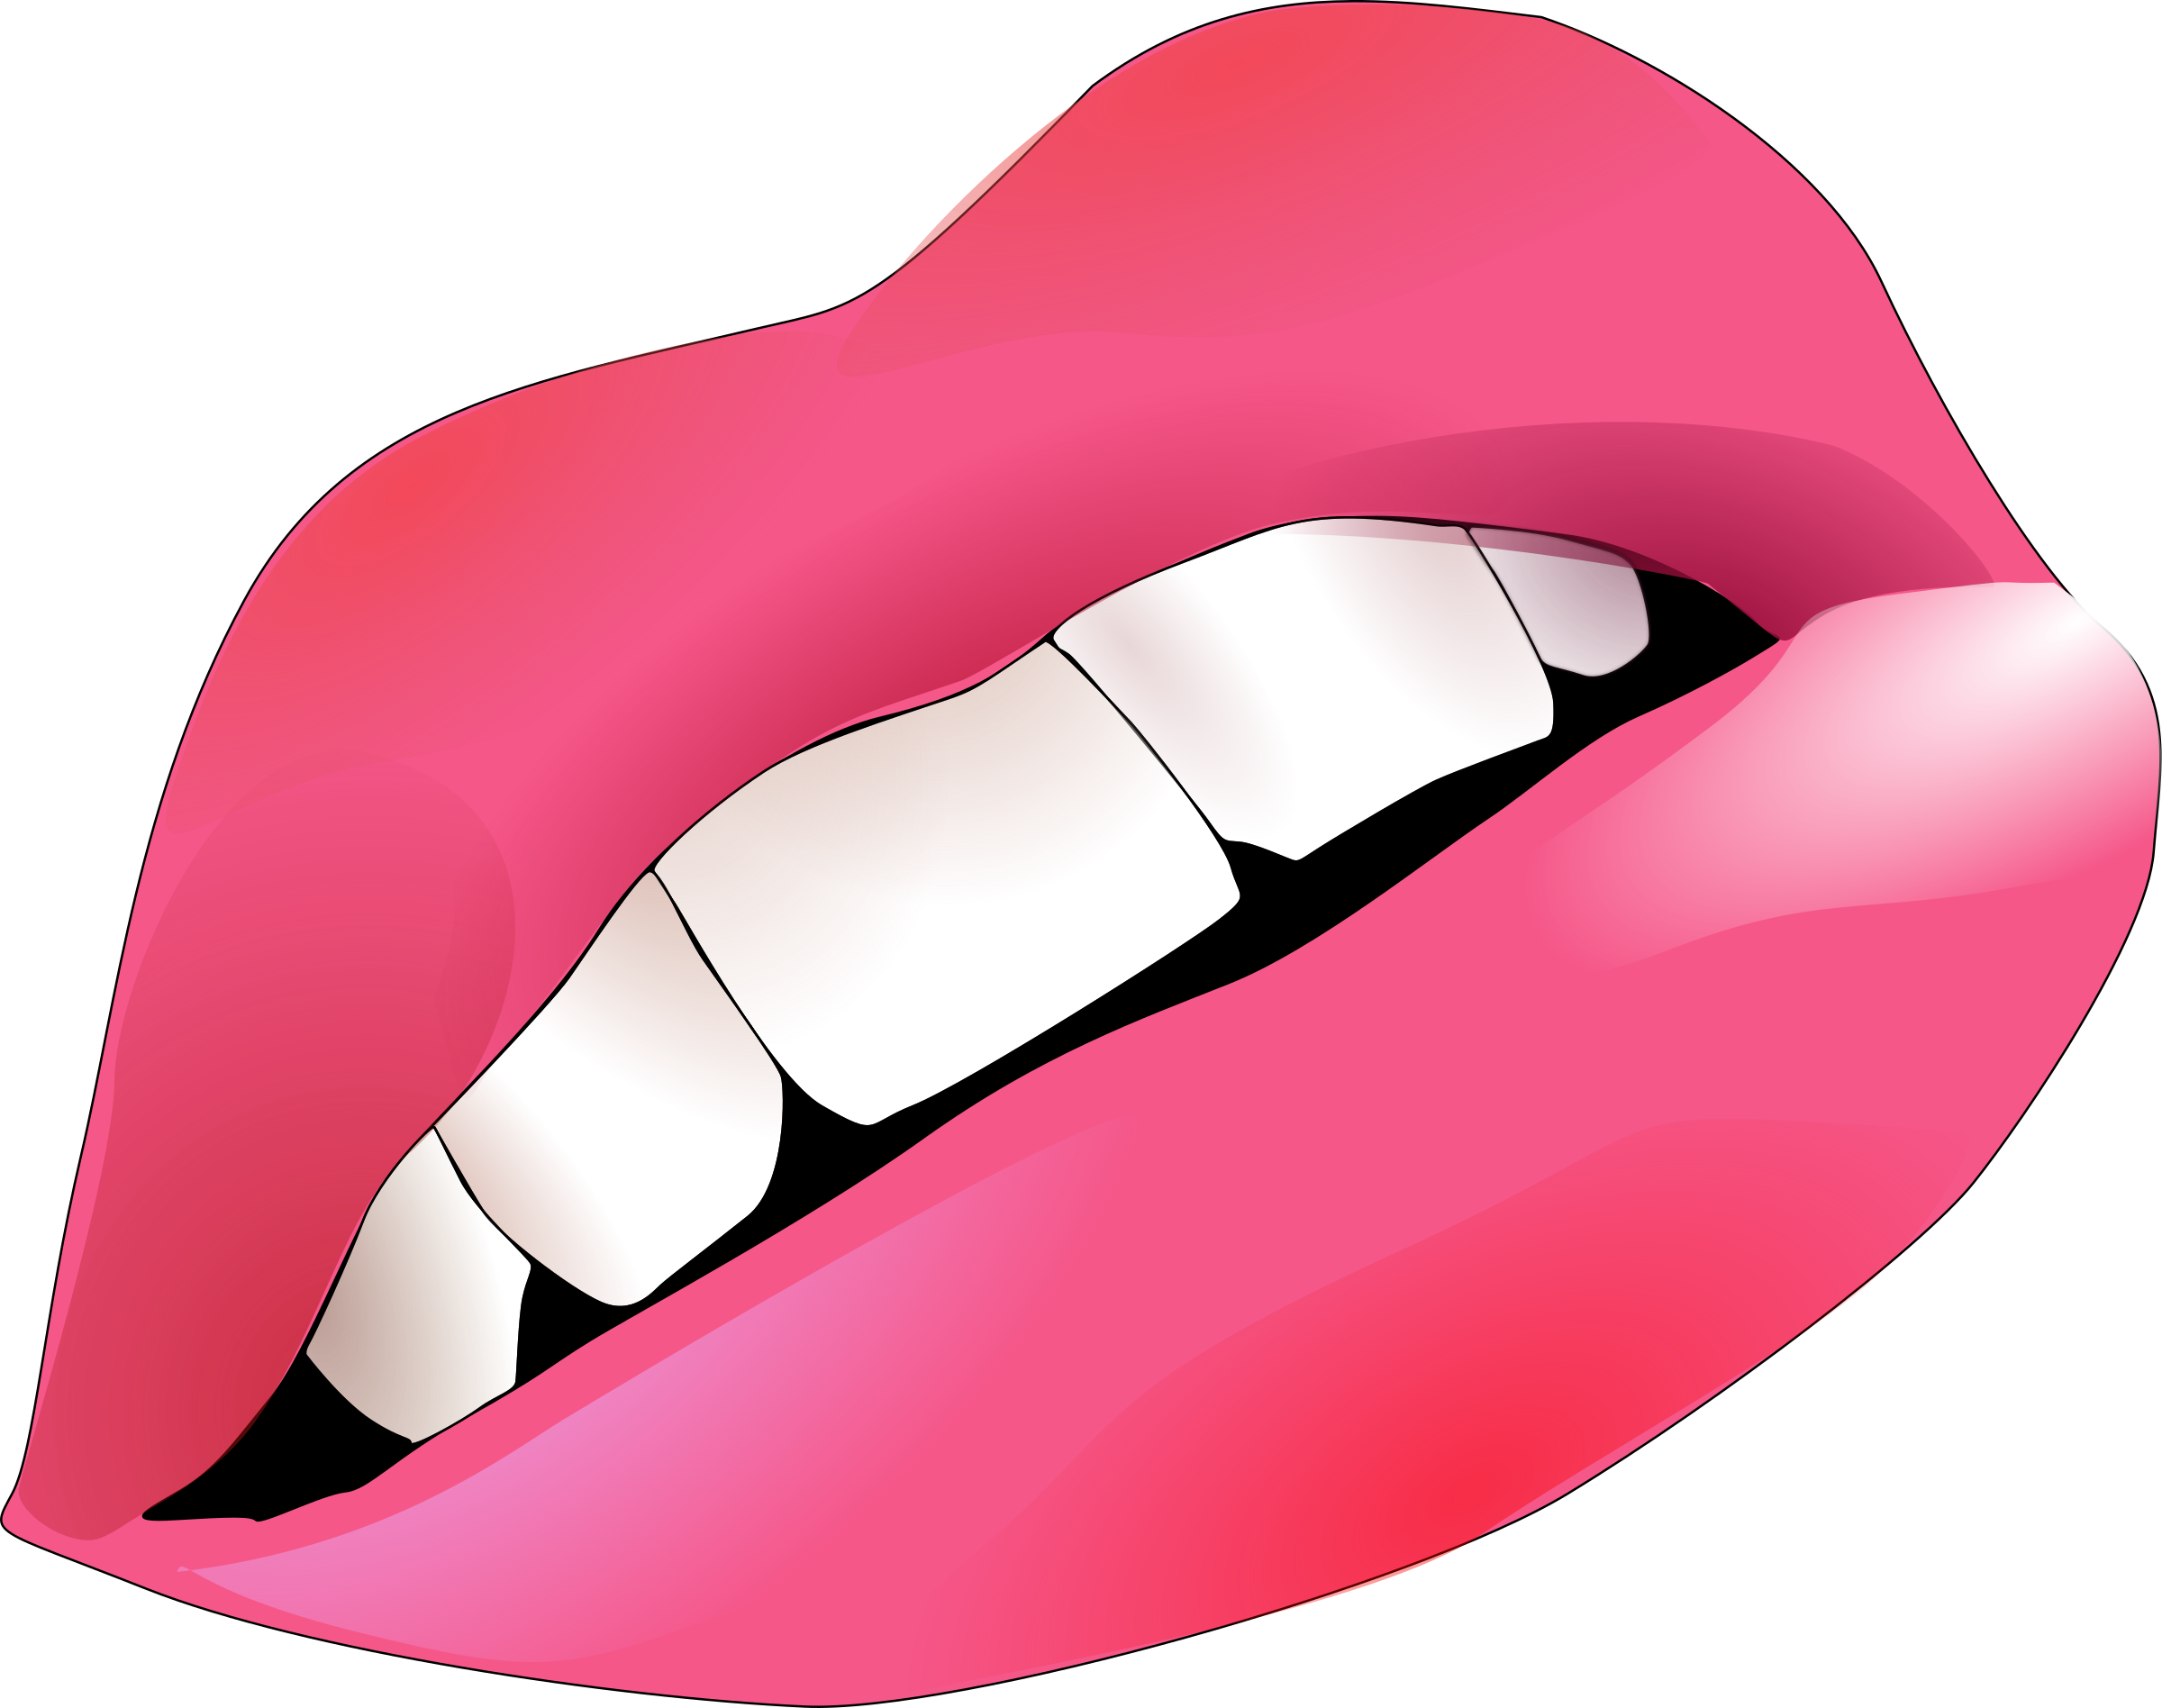 Lips big image png. Tooth clipart tongue